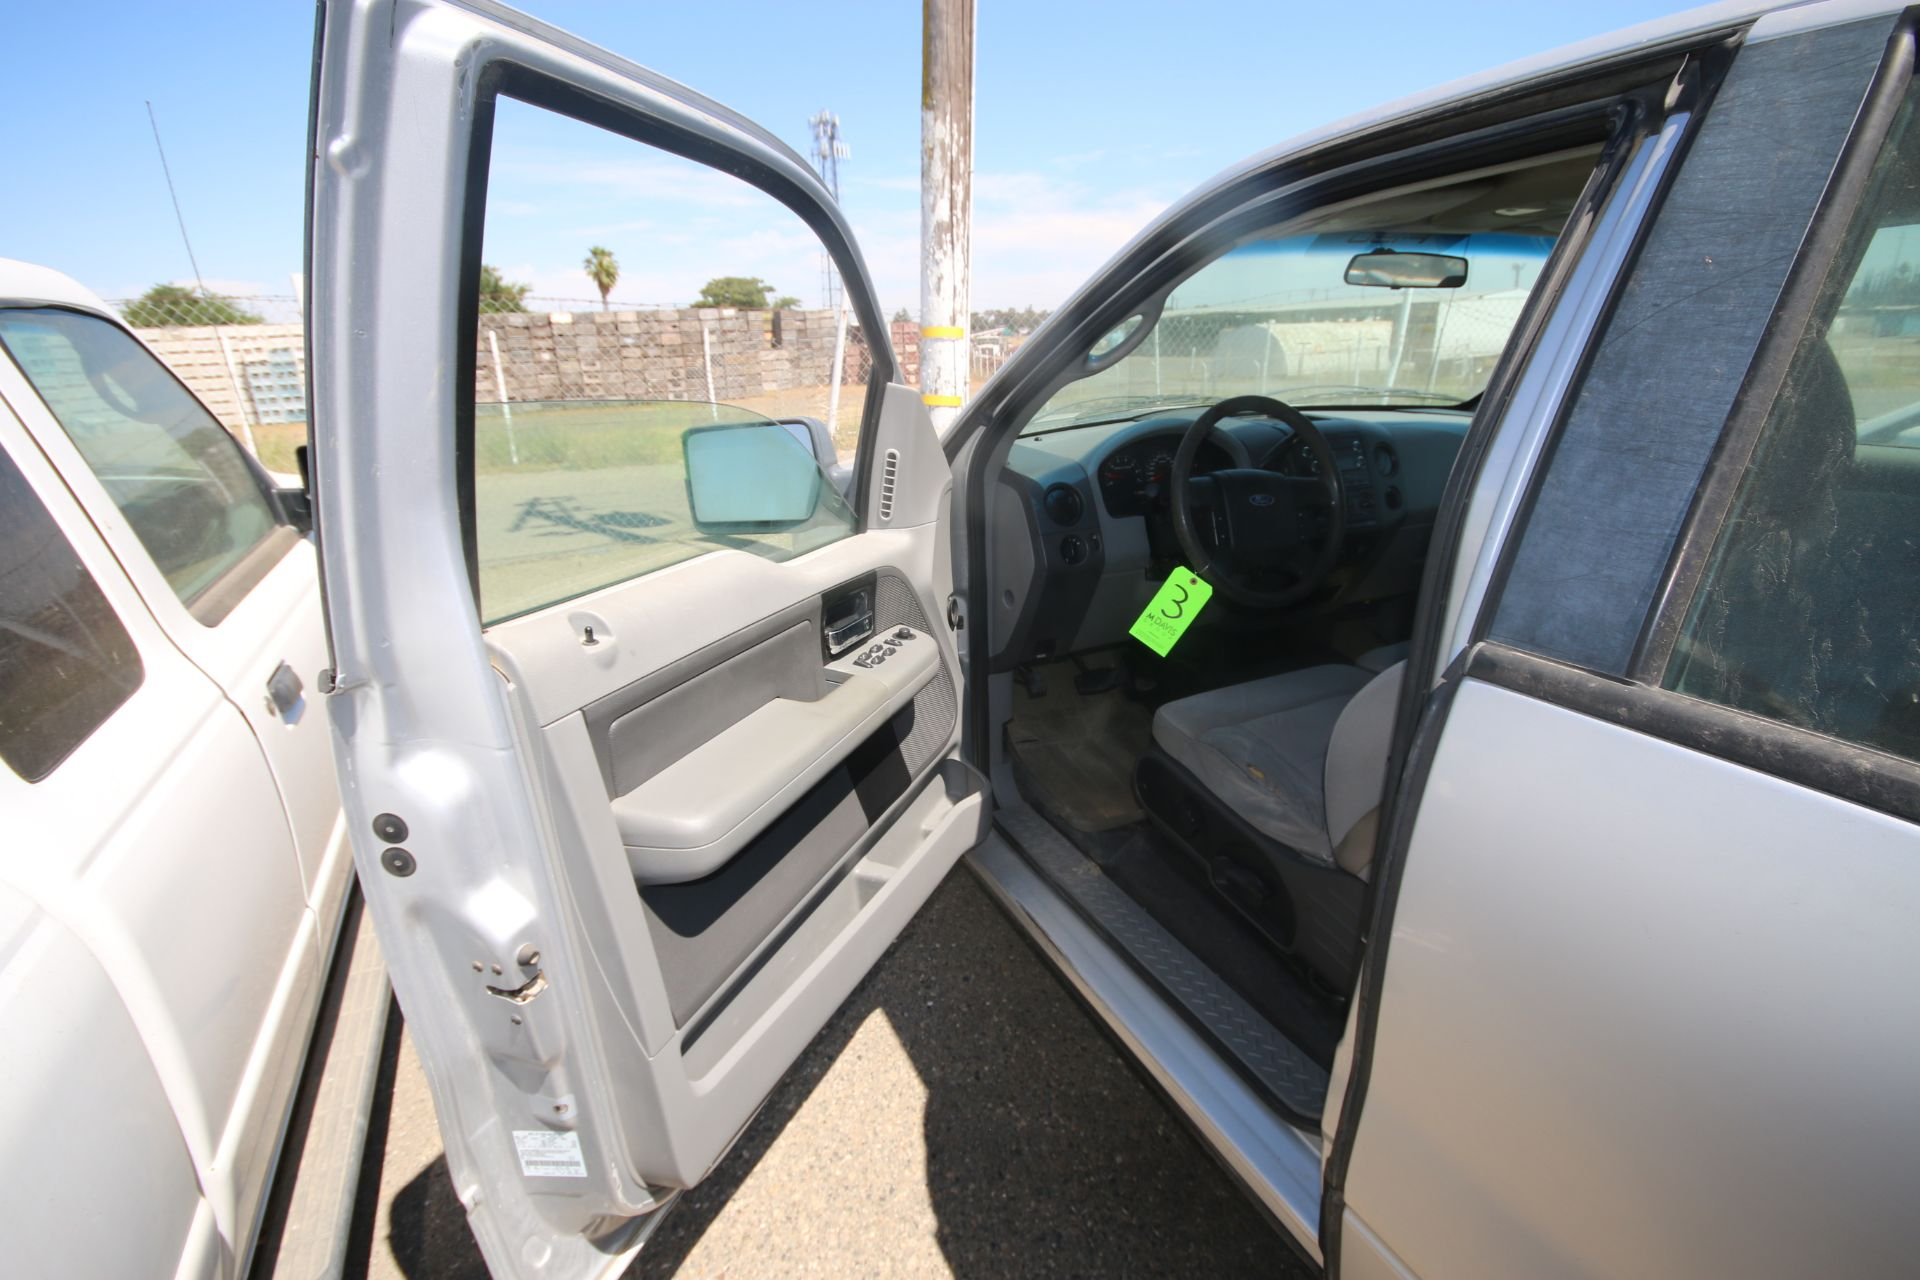 2008 Ford F150 Pick Up Truck, VIN #: 1FTRX12W7BFB9710, with 214,817 Miles, Started Up as of 06/24/ - Image 16 of 24